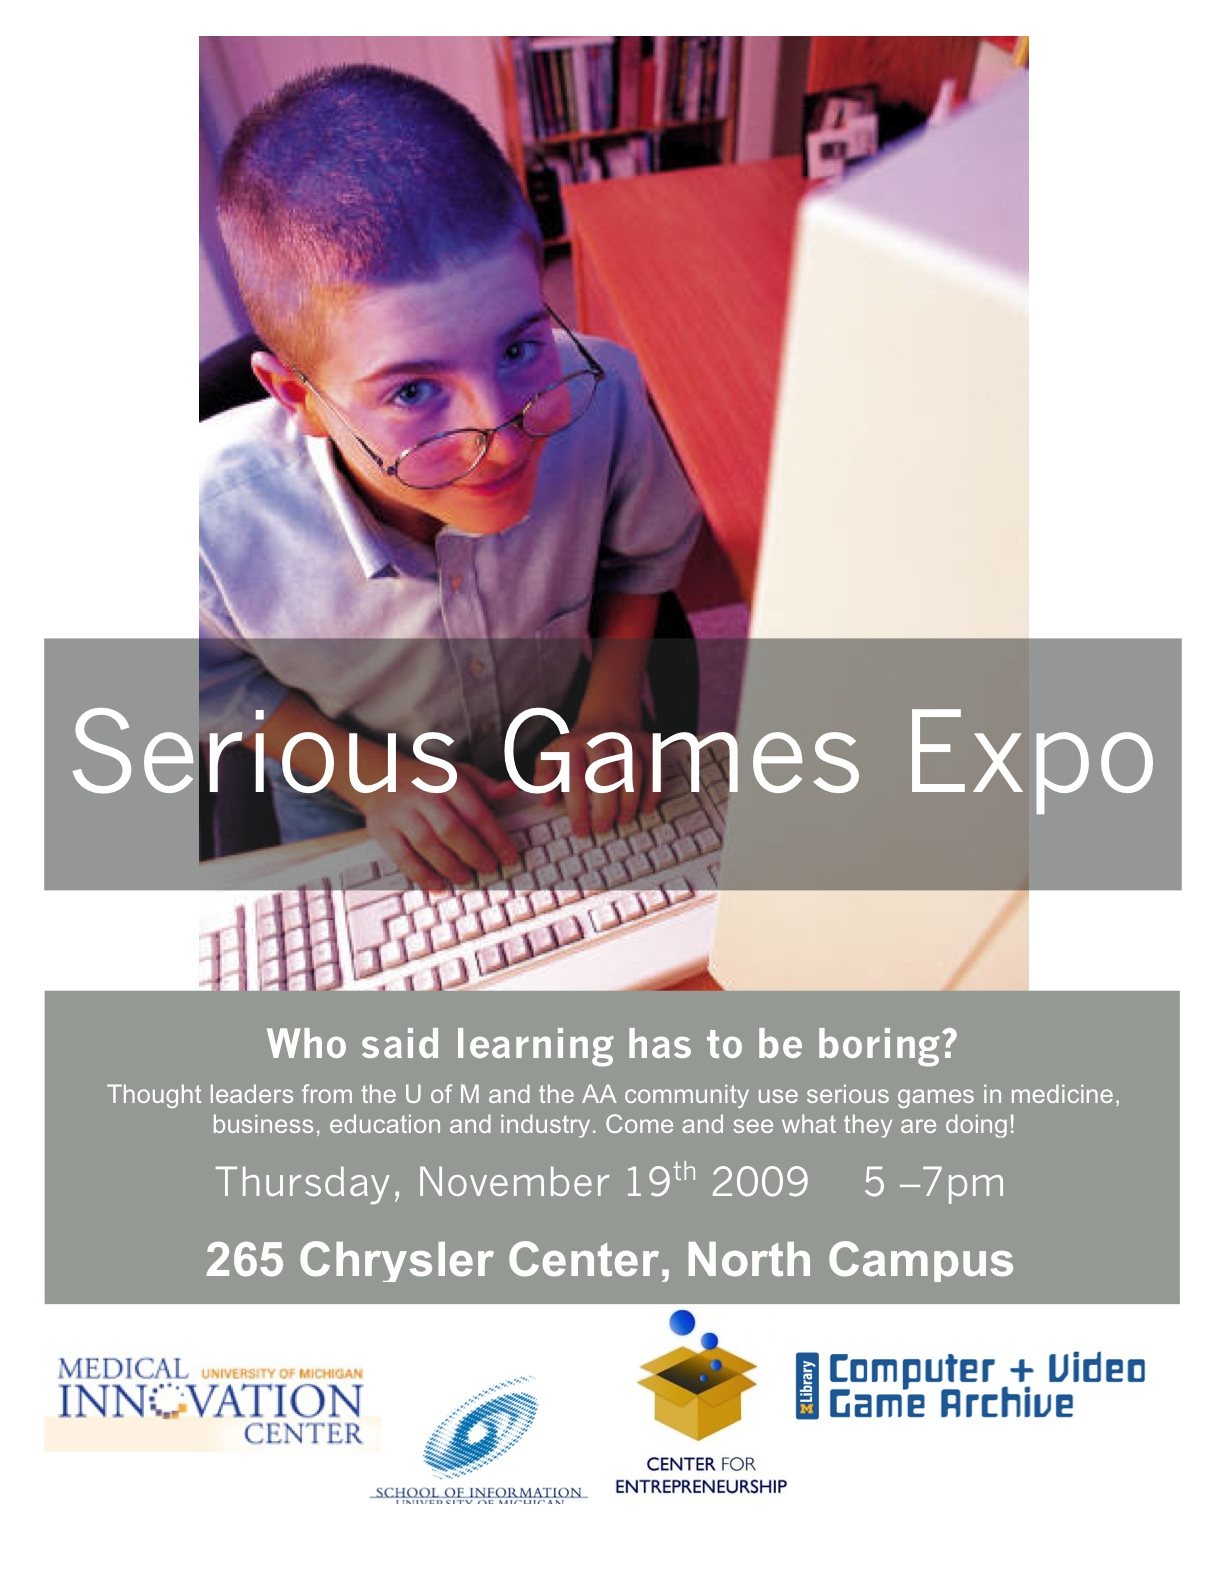 Serious games expo poster